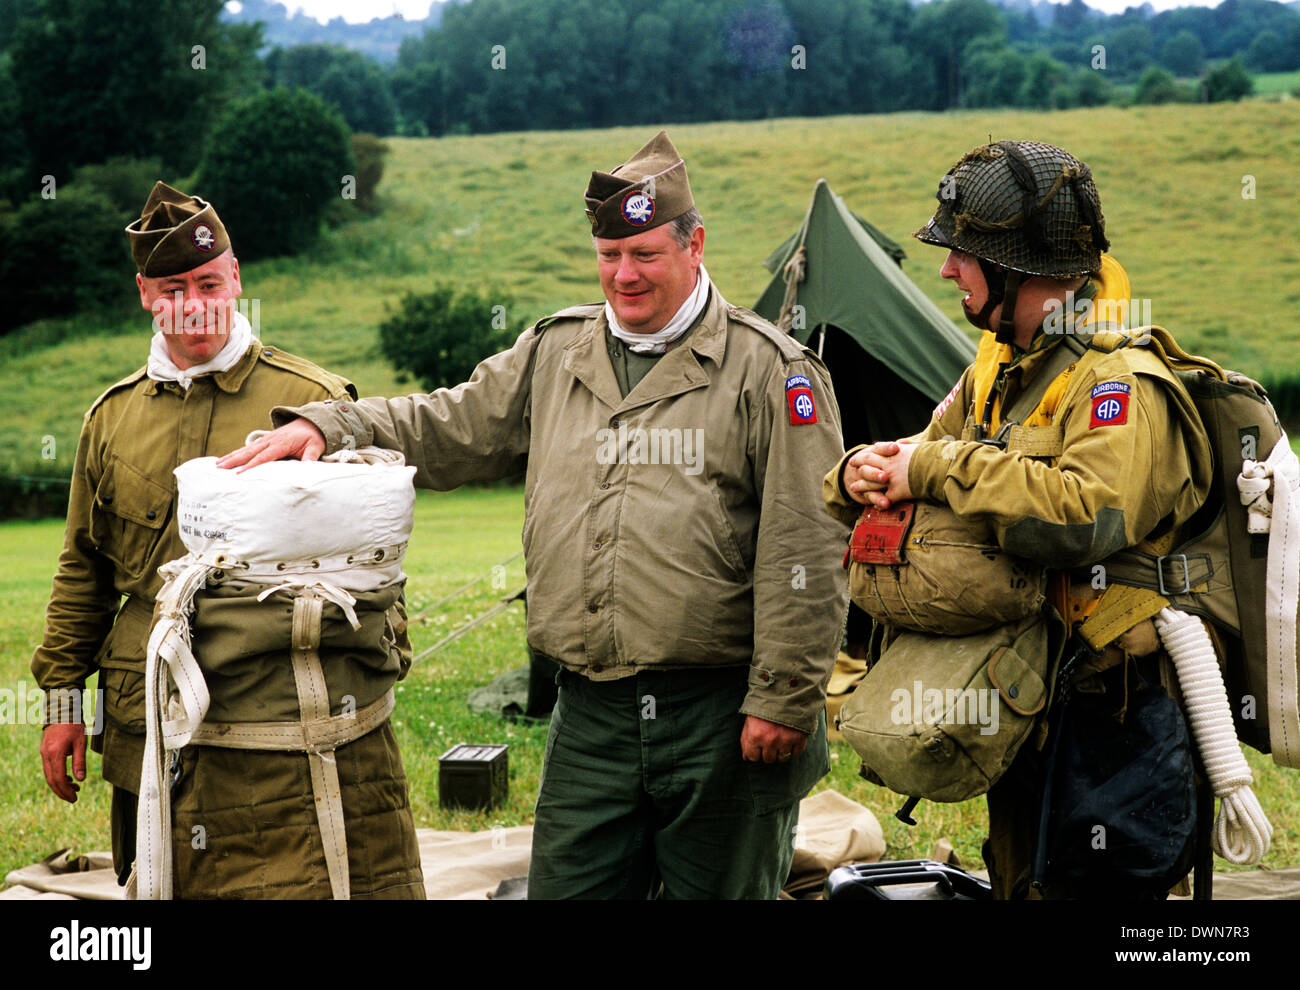 United States Airborne Division, WW2, World War 2, historical re-enactment airmen parachute division in England second world war 1943 UK uniforms military American - Stock Image